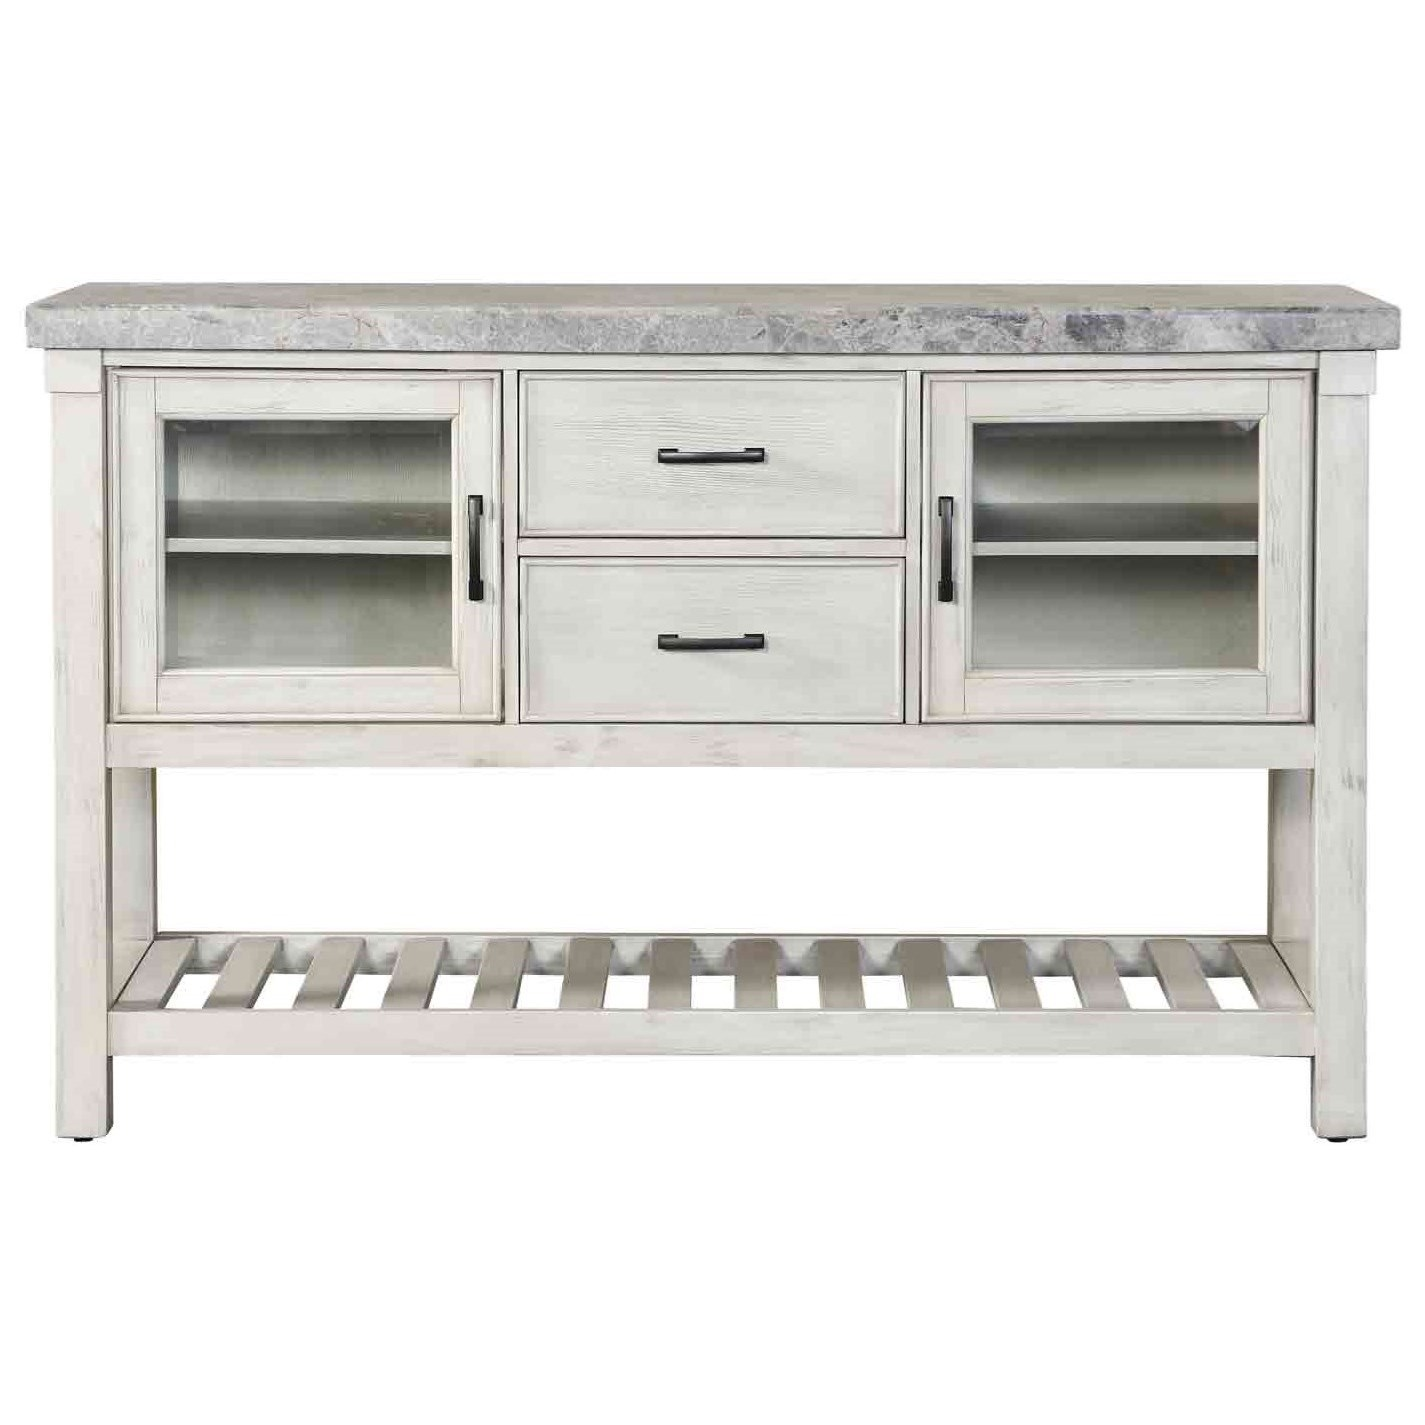 Canova Marble Top Server by Steve Silver at Standard Furniture